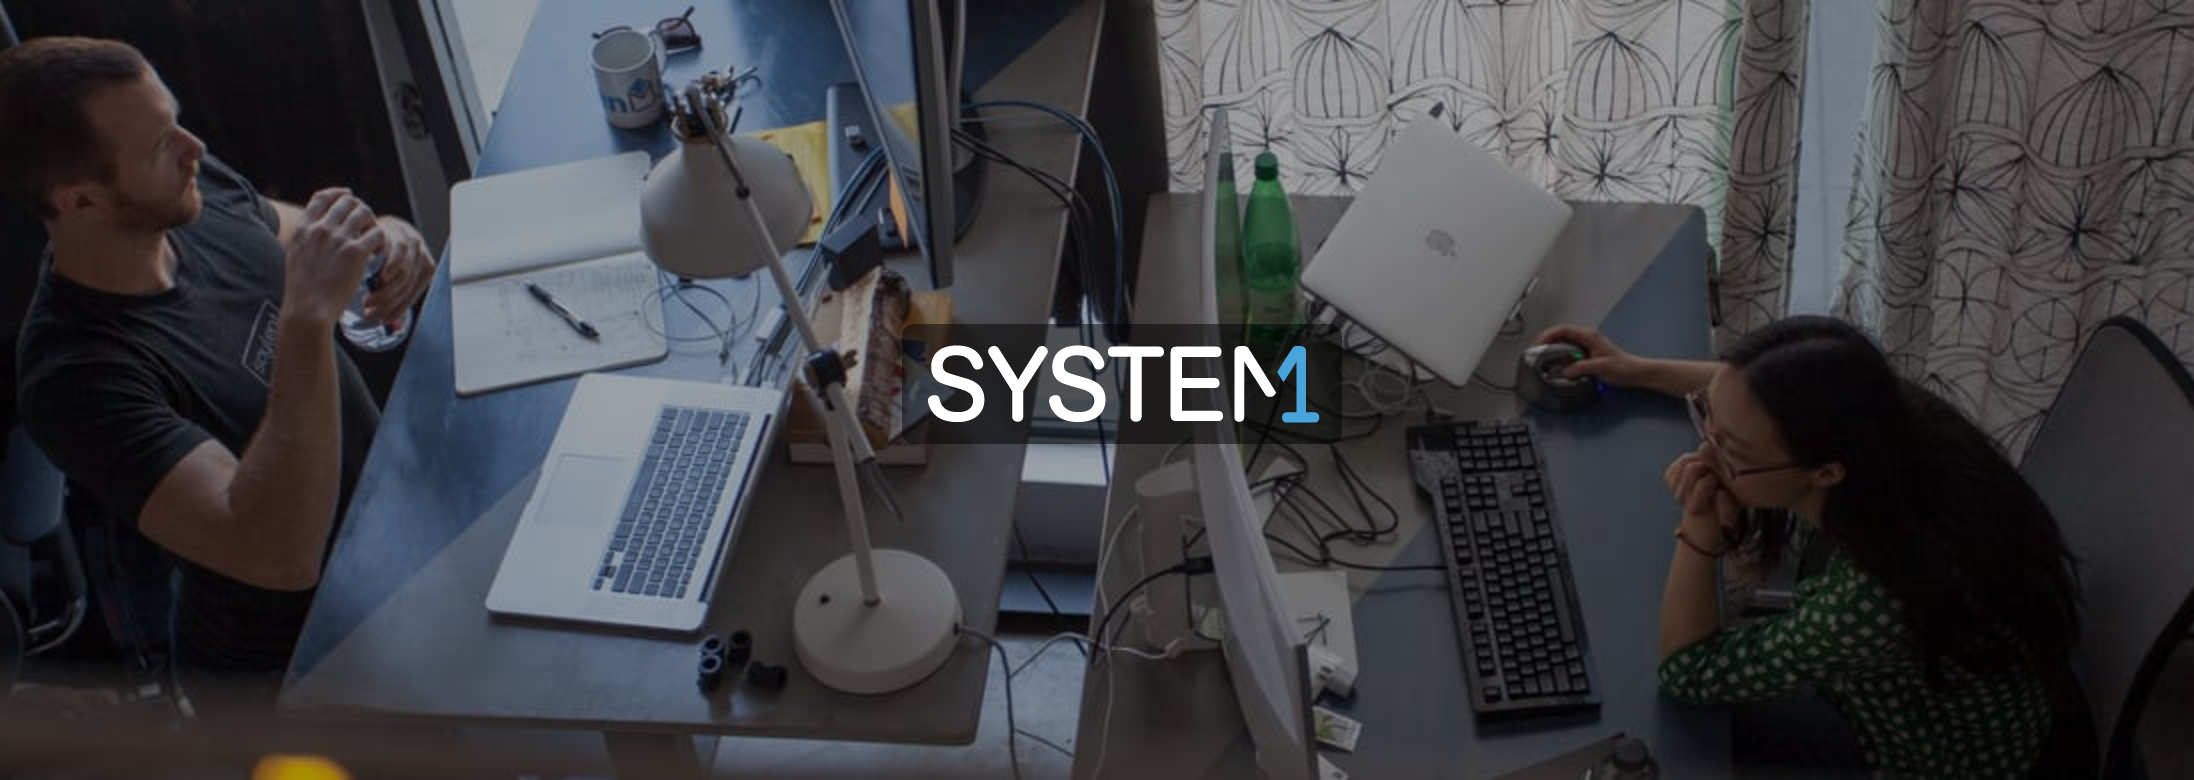 system1 careers